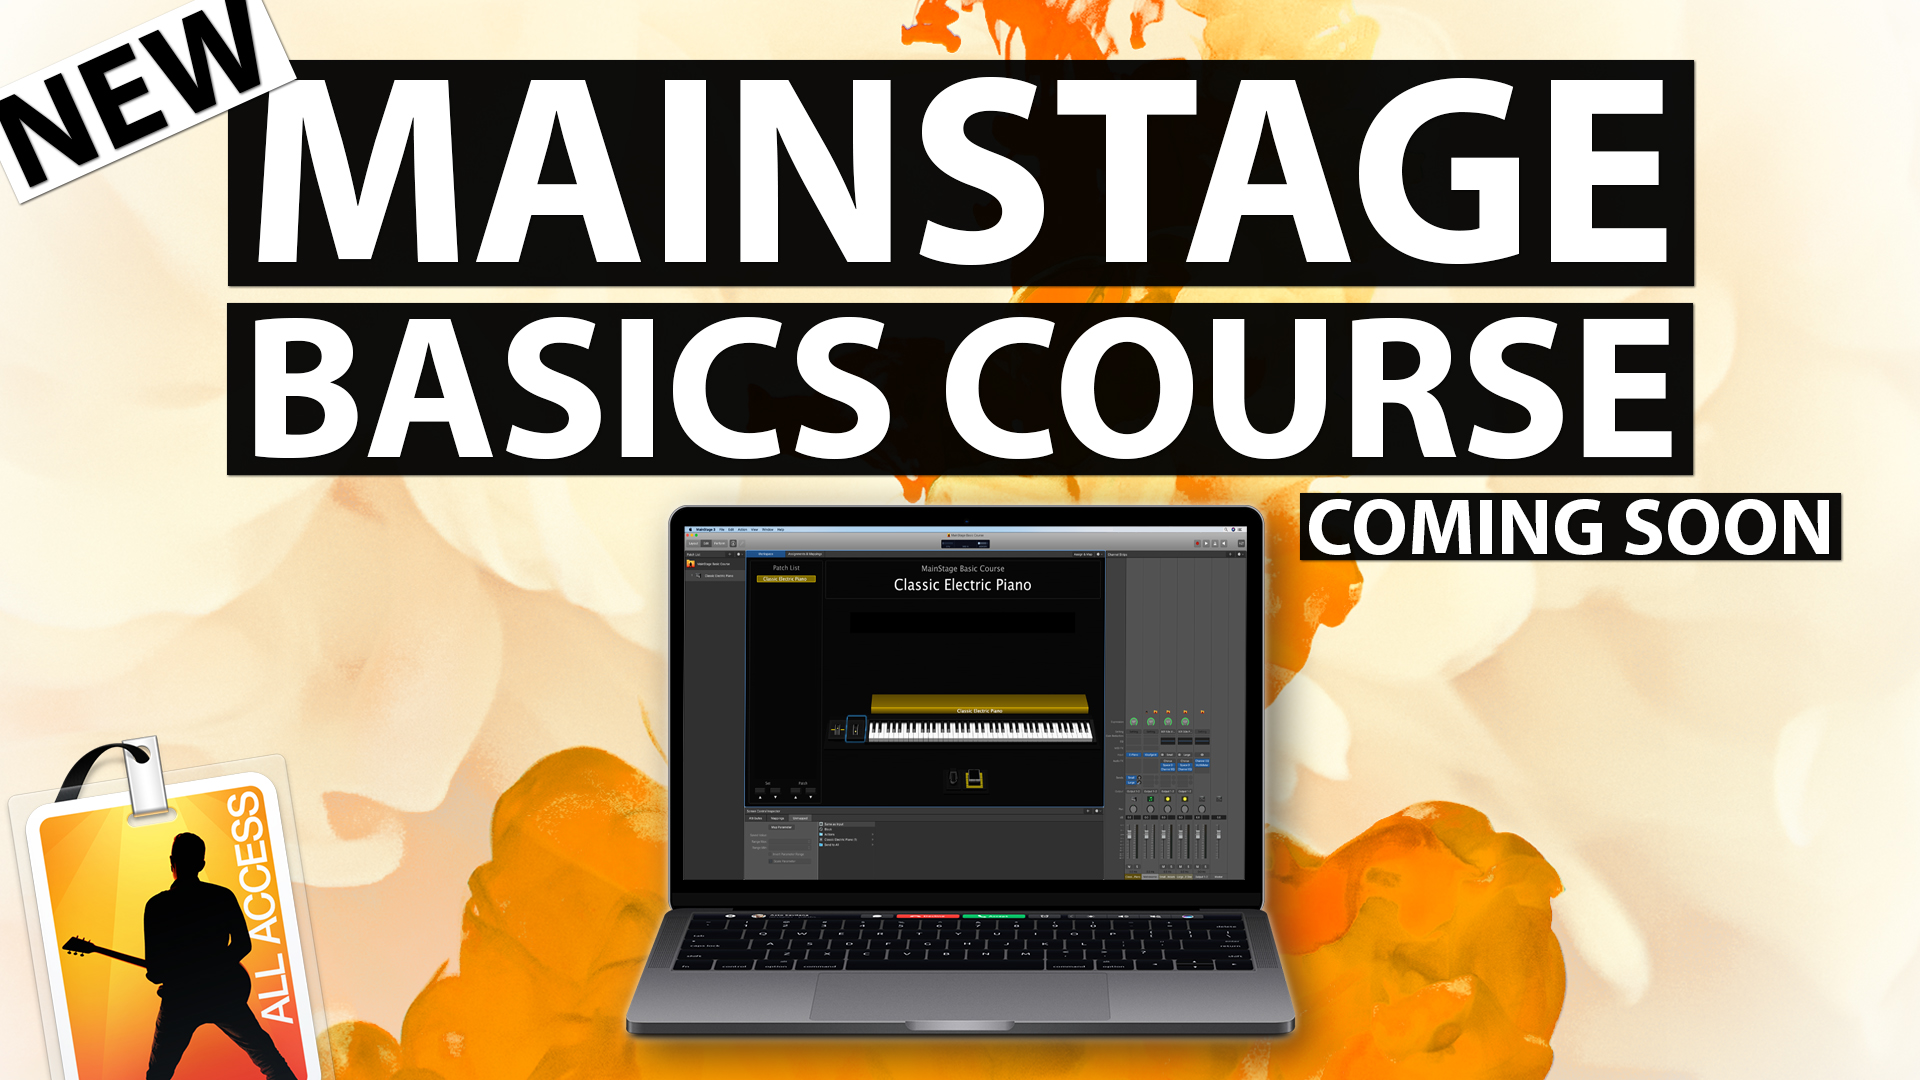 mainstage basics course coming soonblog.jpg